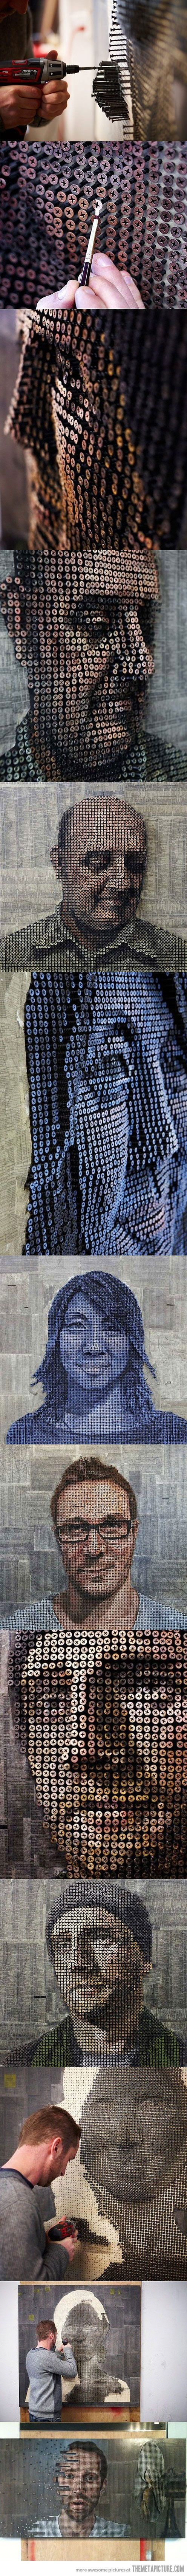 3D Portrait made with screws.  This is  extremely cool design.  The amount of detail, drive, and planning that had to go into each one of these pictures is astounding.  I feel the coolest thing about this is how the screws are not all the sam level; it creates a more dynamic and a singularity to the person